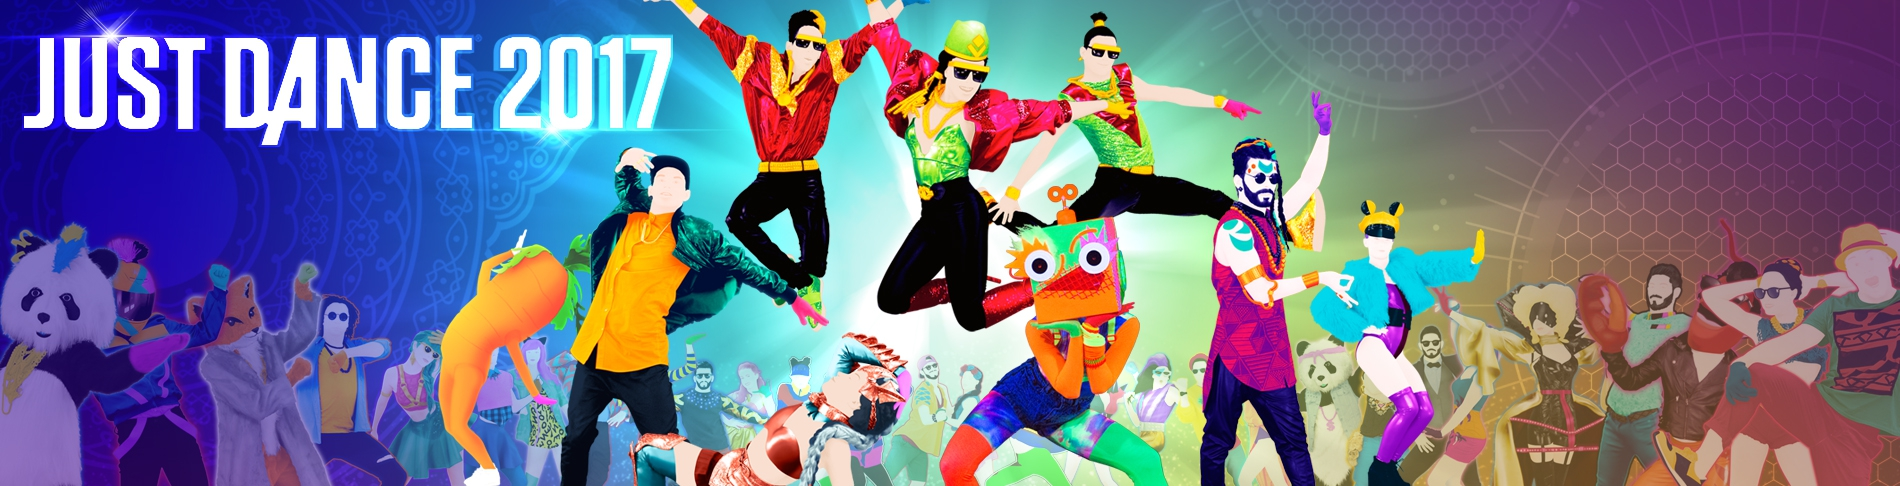 Banner Just Dance 2017